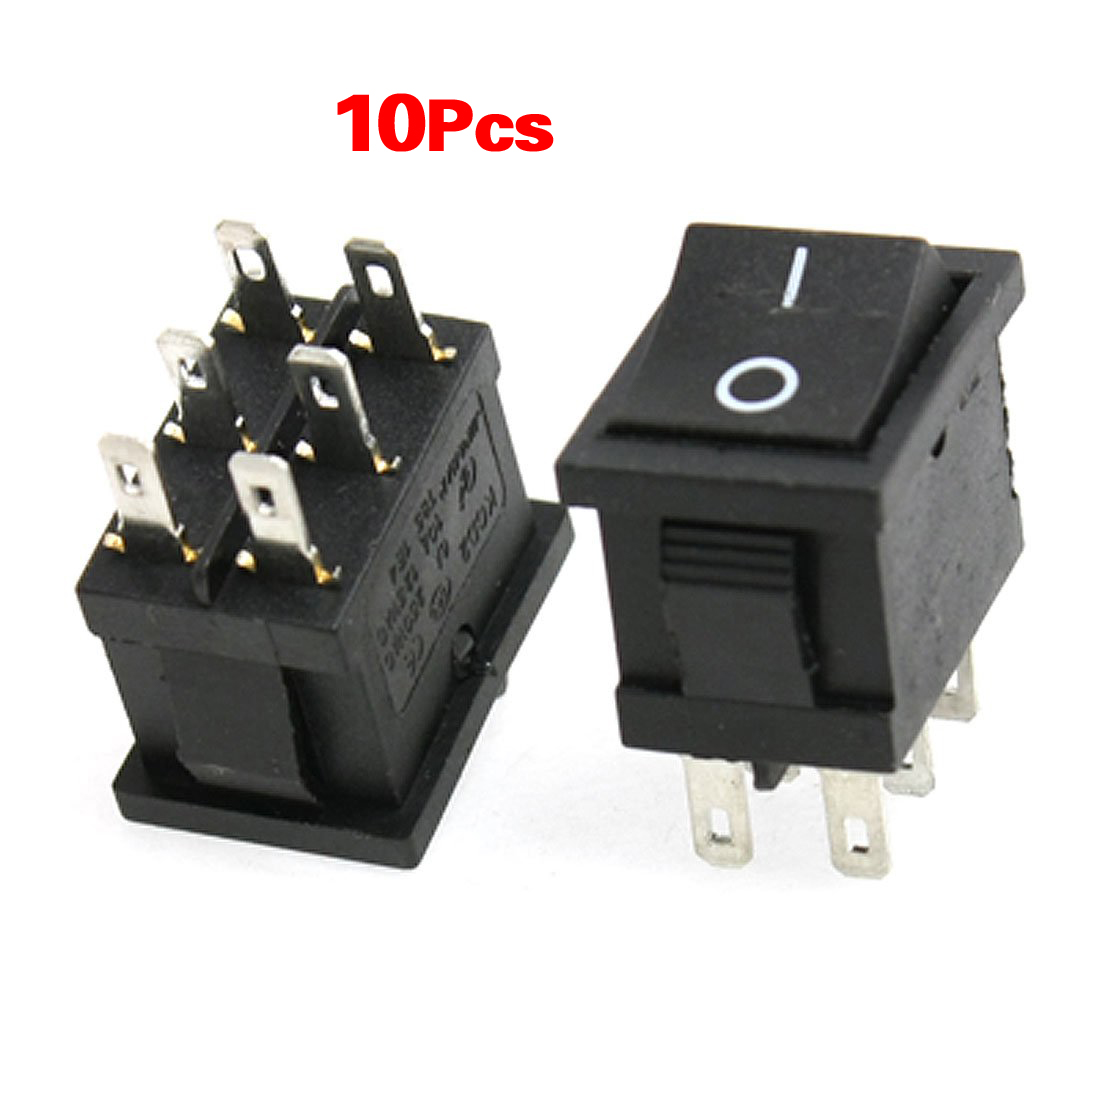 Promotion! 10pcs AC 6A/250V 10A/125V 6 Pin DPDT ON/ON 2 Position Snap In Boat Rocker Switch 10pcs ac 250v 3a 2 pin on off i o spst snap in mini boat rocker switch 10 15mm